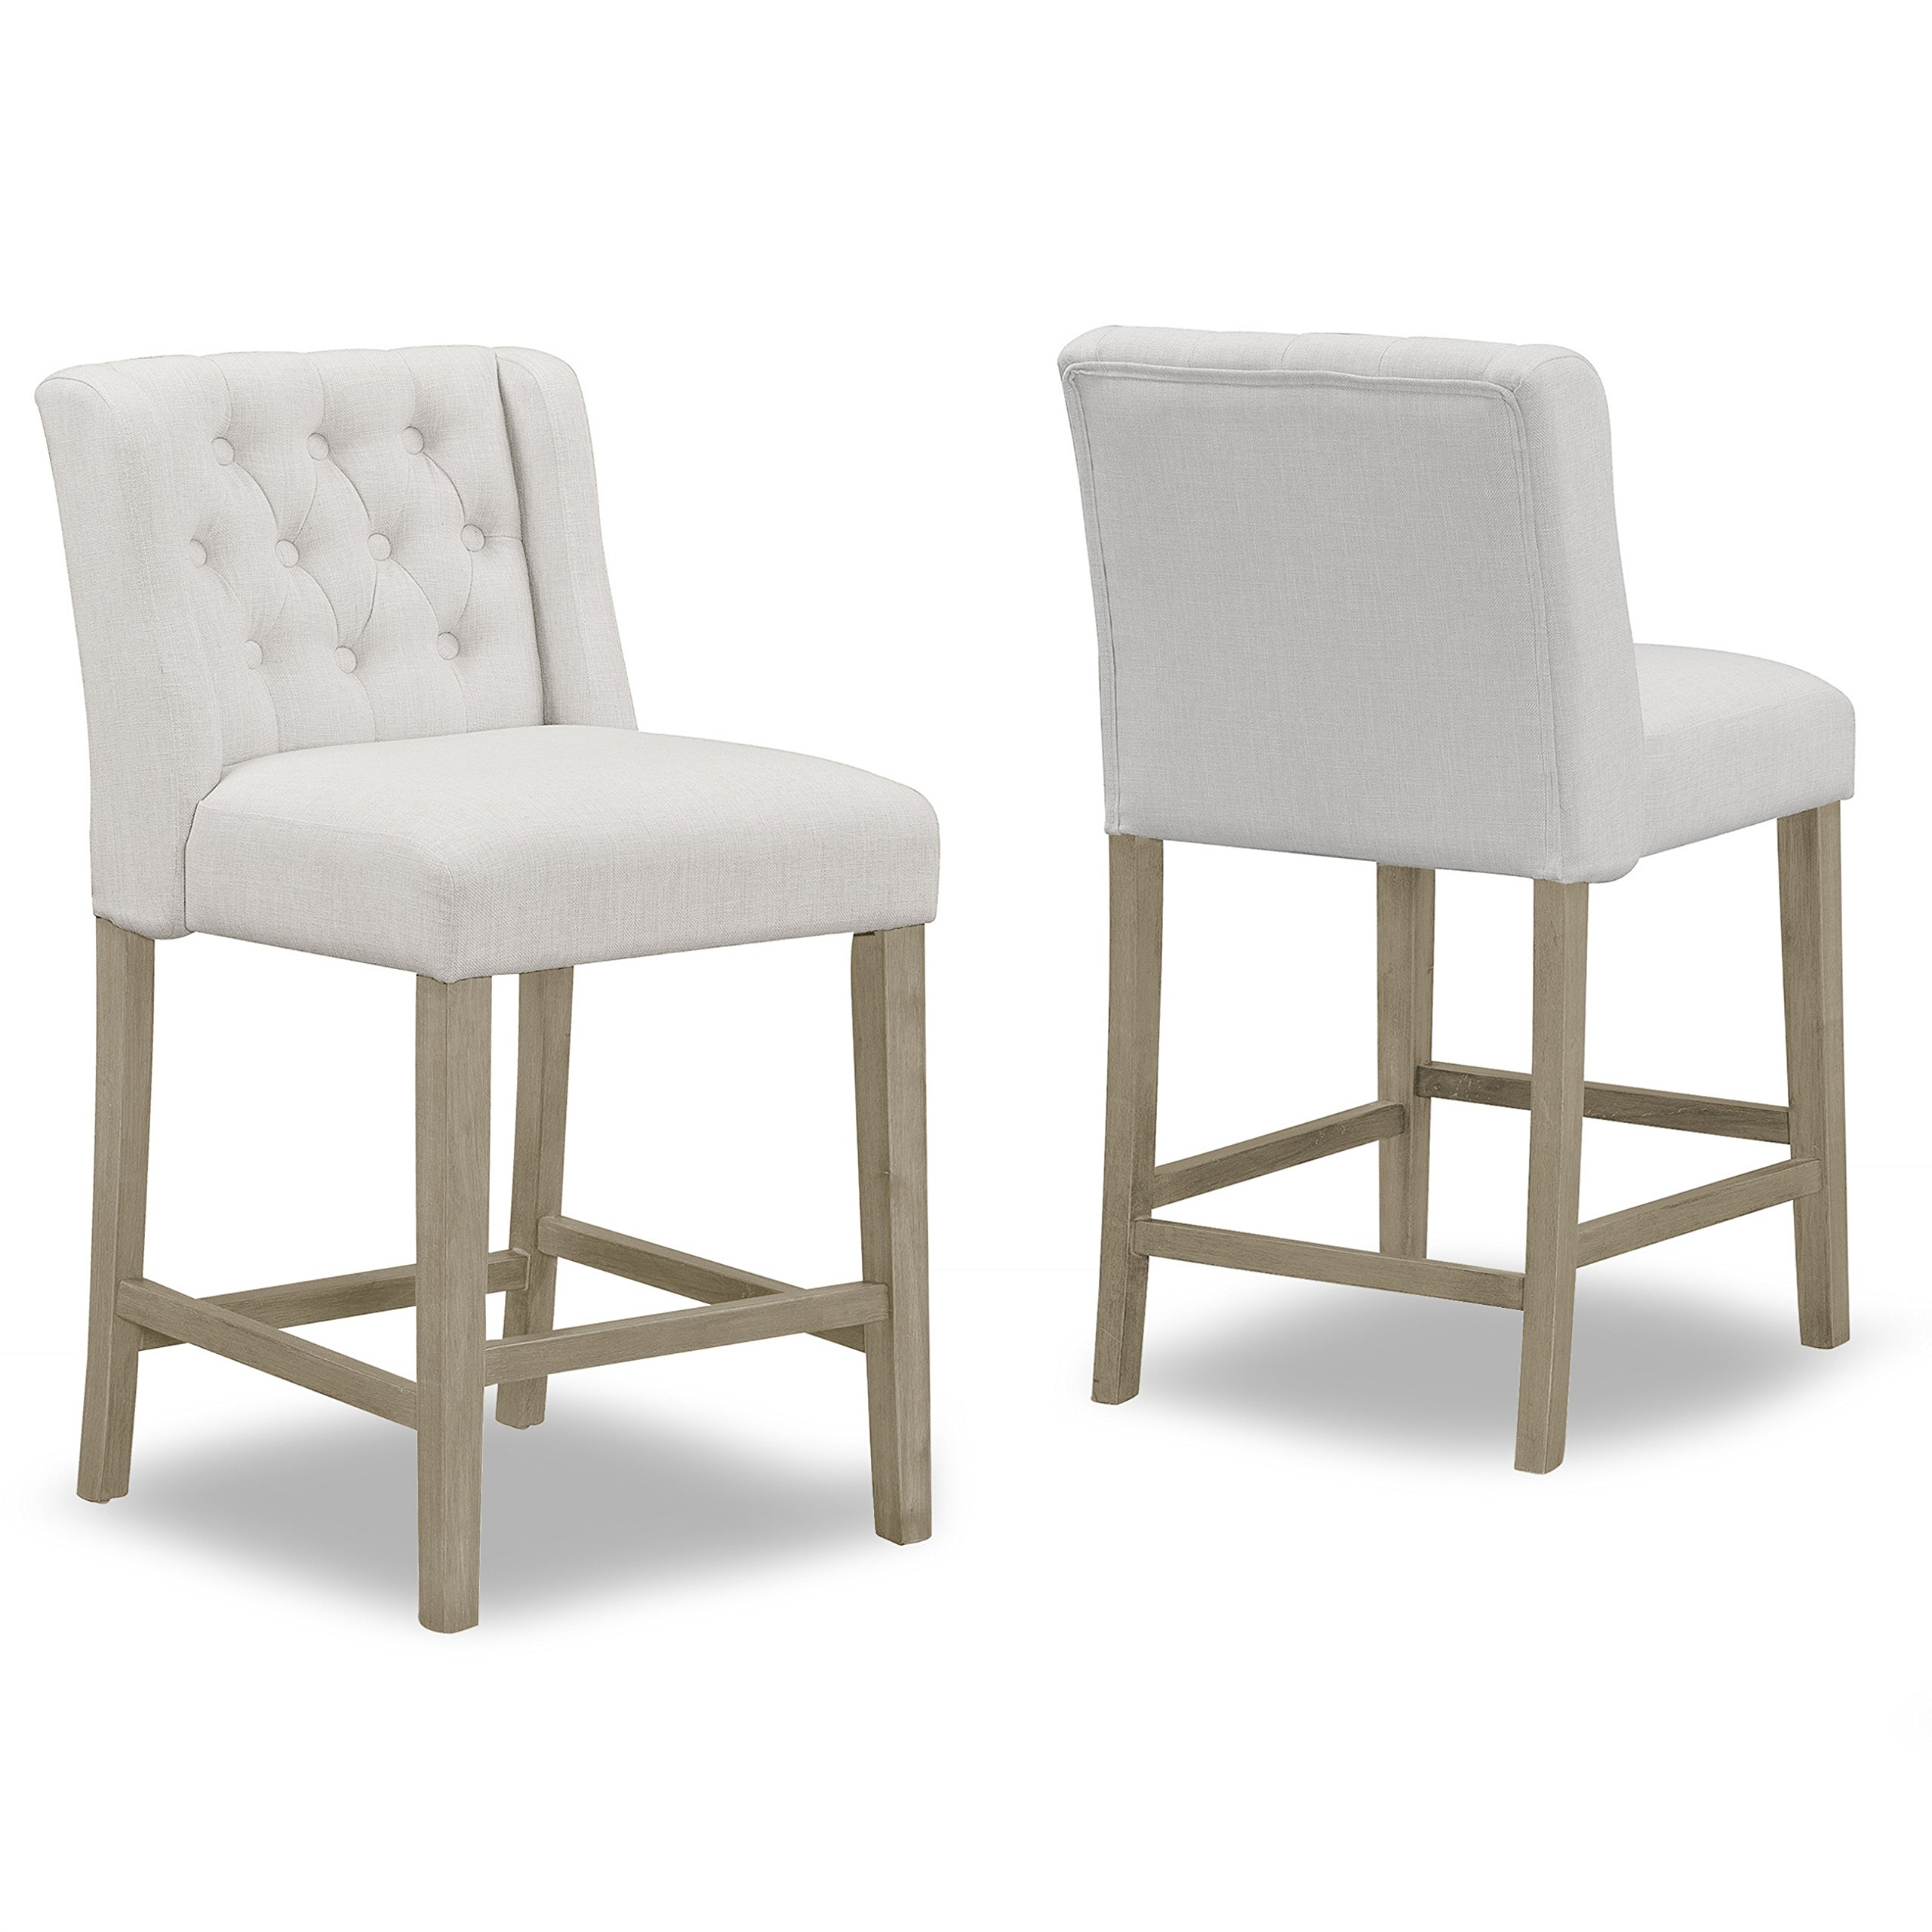 Set of 2 Aled Beige Fabric Counter Stool with Side Wings and Tufted Buttons